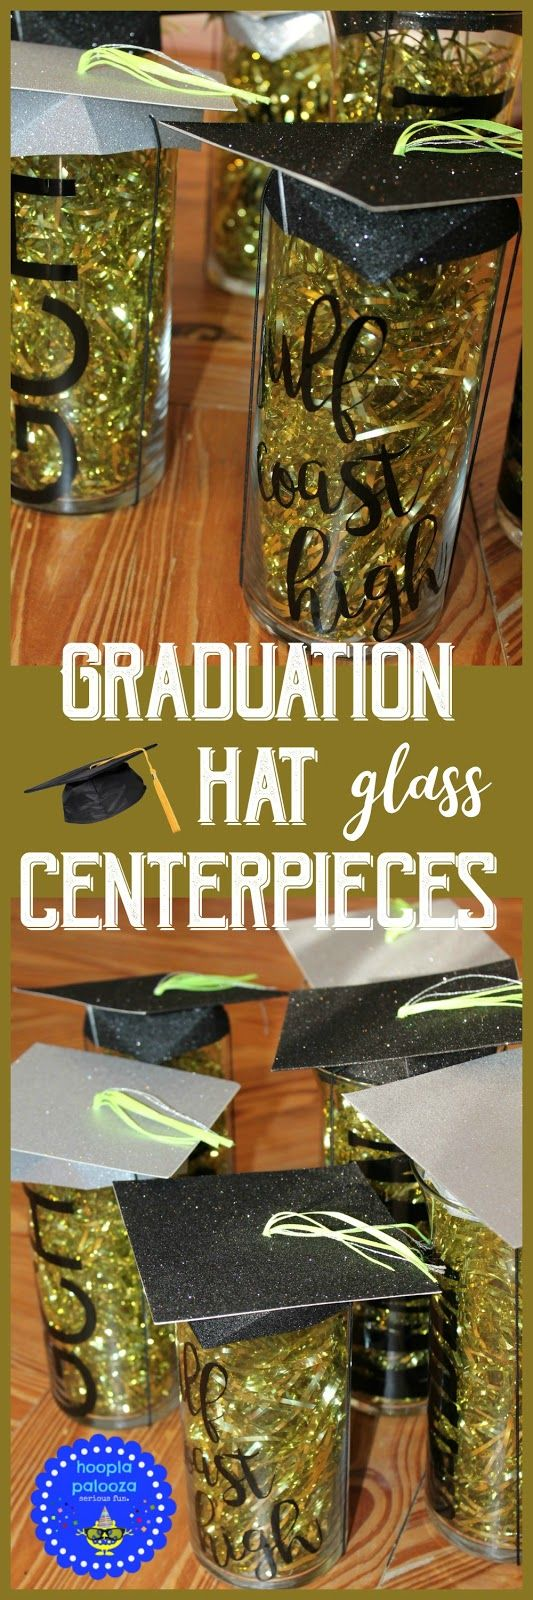 how to make a graduation hat centerpiece